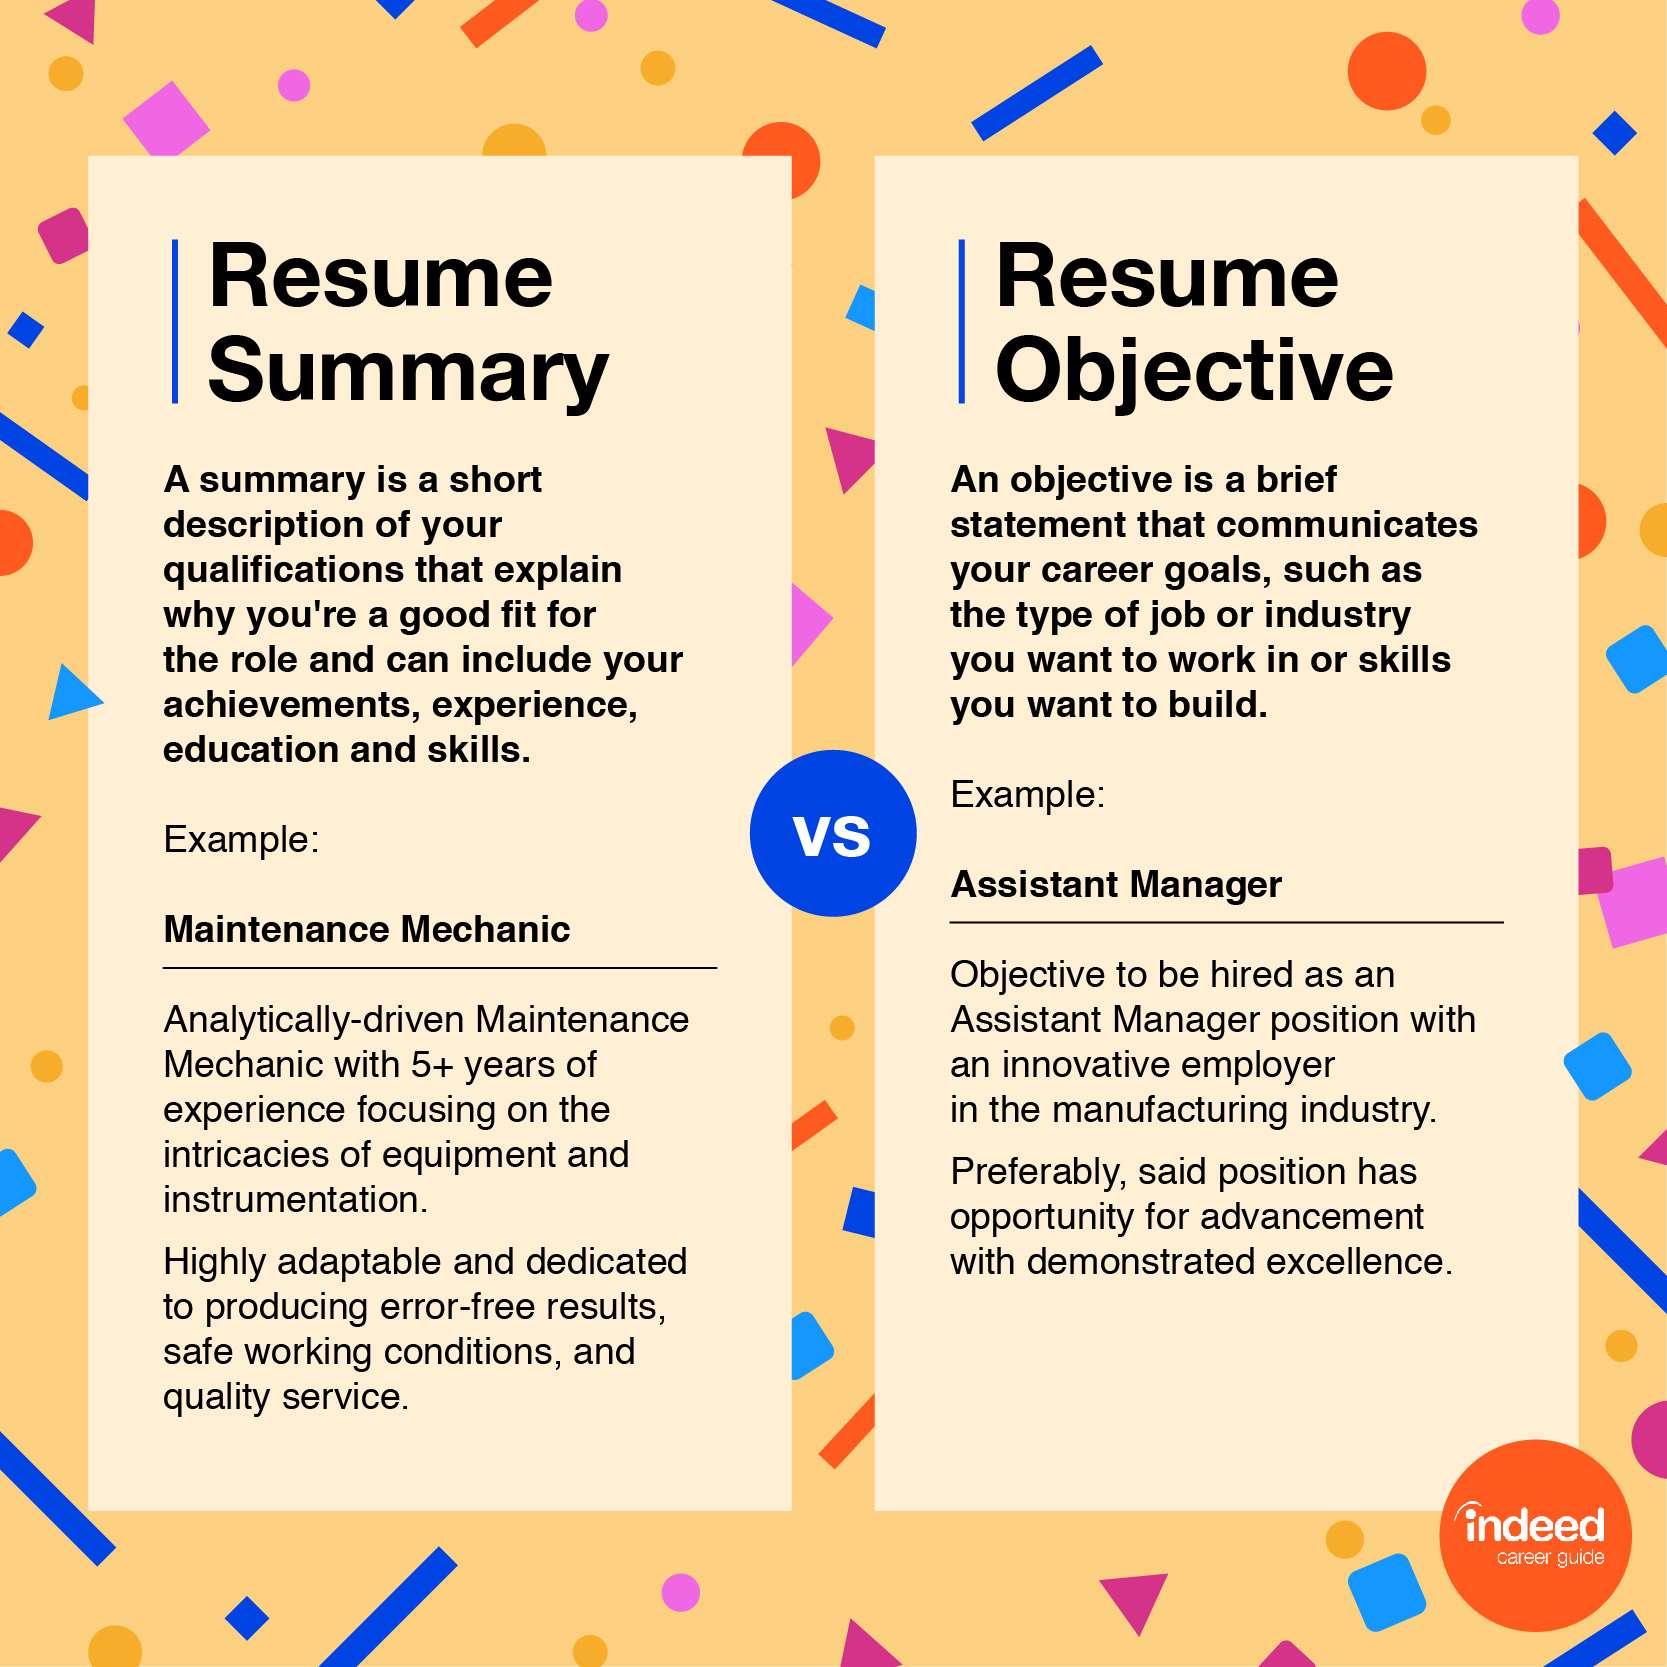 resume summary guide examples indeed job v4 creative writers dispute specialist student Resume Job Resume Summary Examples